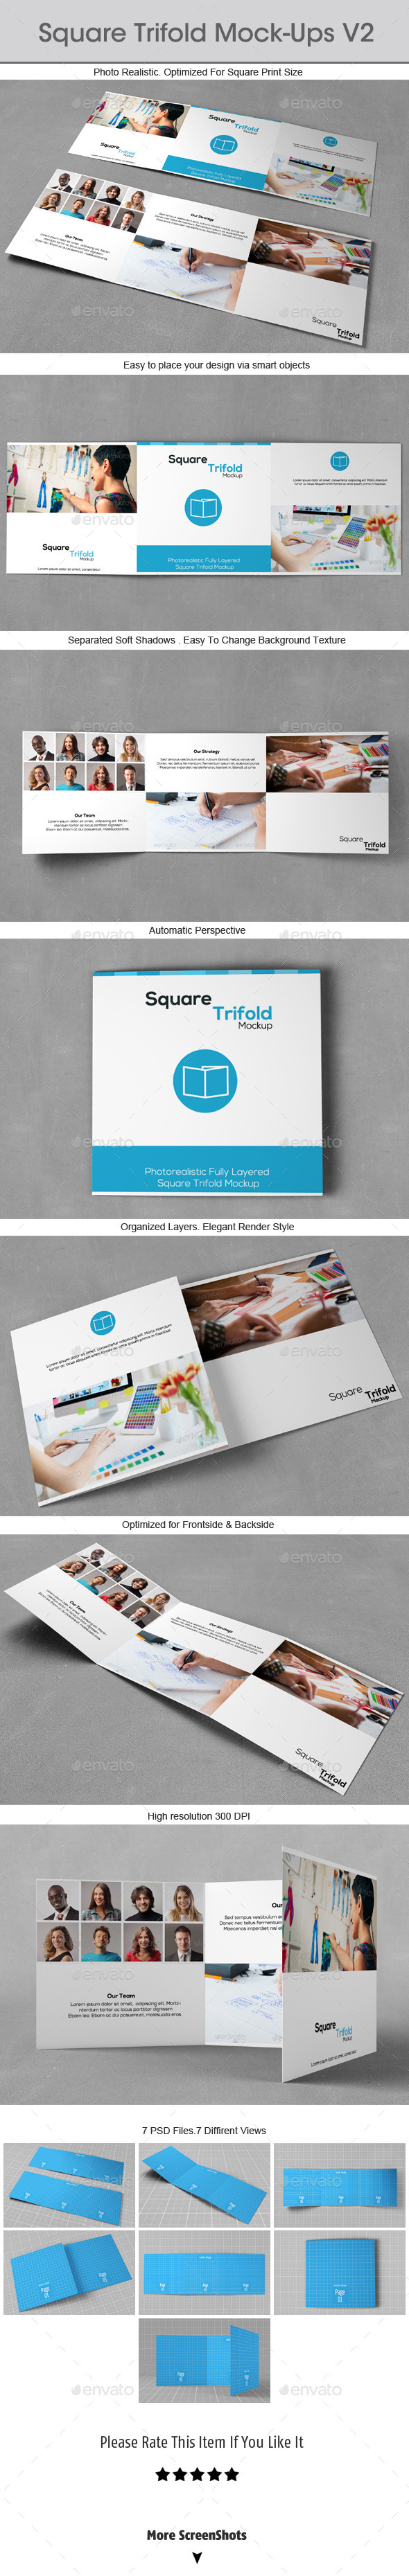 GraphicRiver Square Trifold Mock-ups v2 9231829